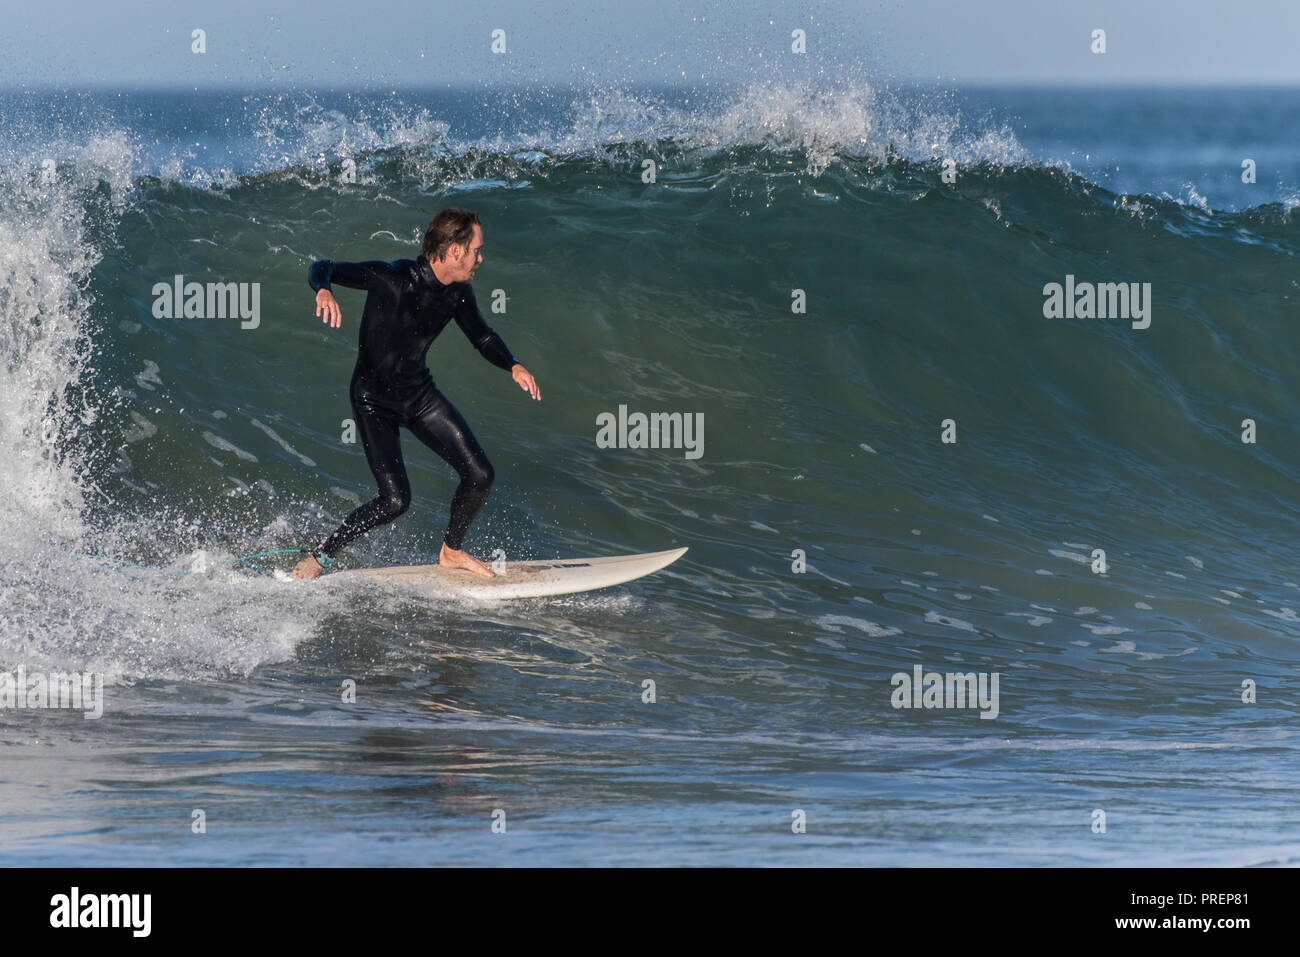 Surfer in black wetsuit finds smooth and glassy section of wave at Surfer's Knoll, Ventura, California on October 1, 2018. Stock Photo